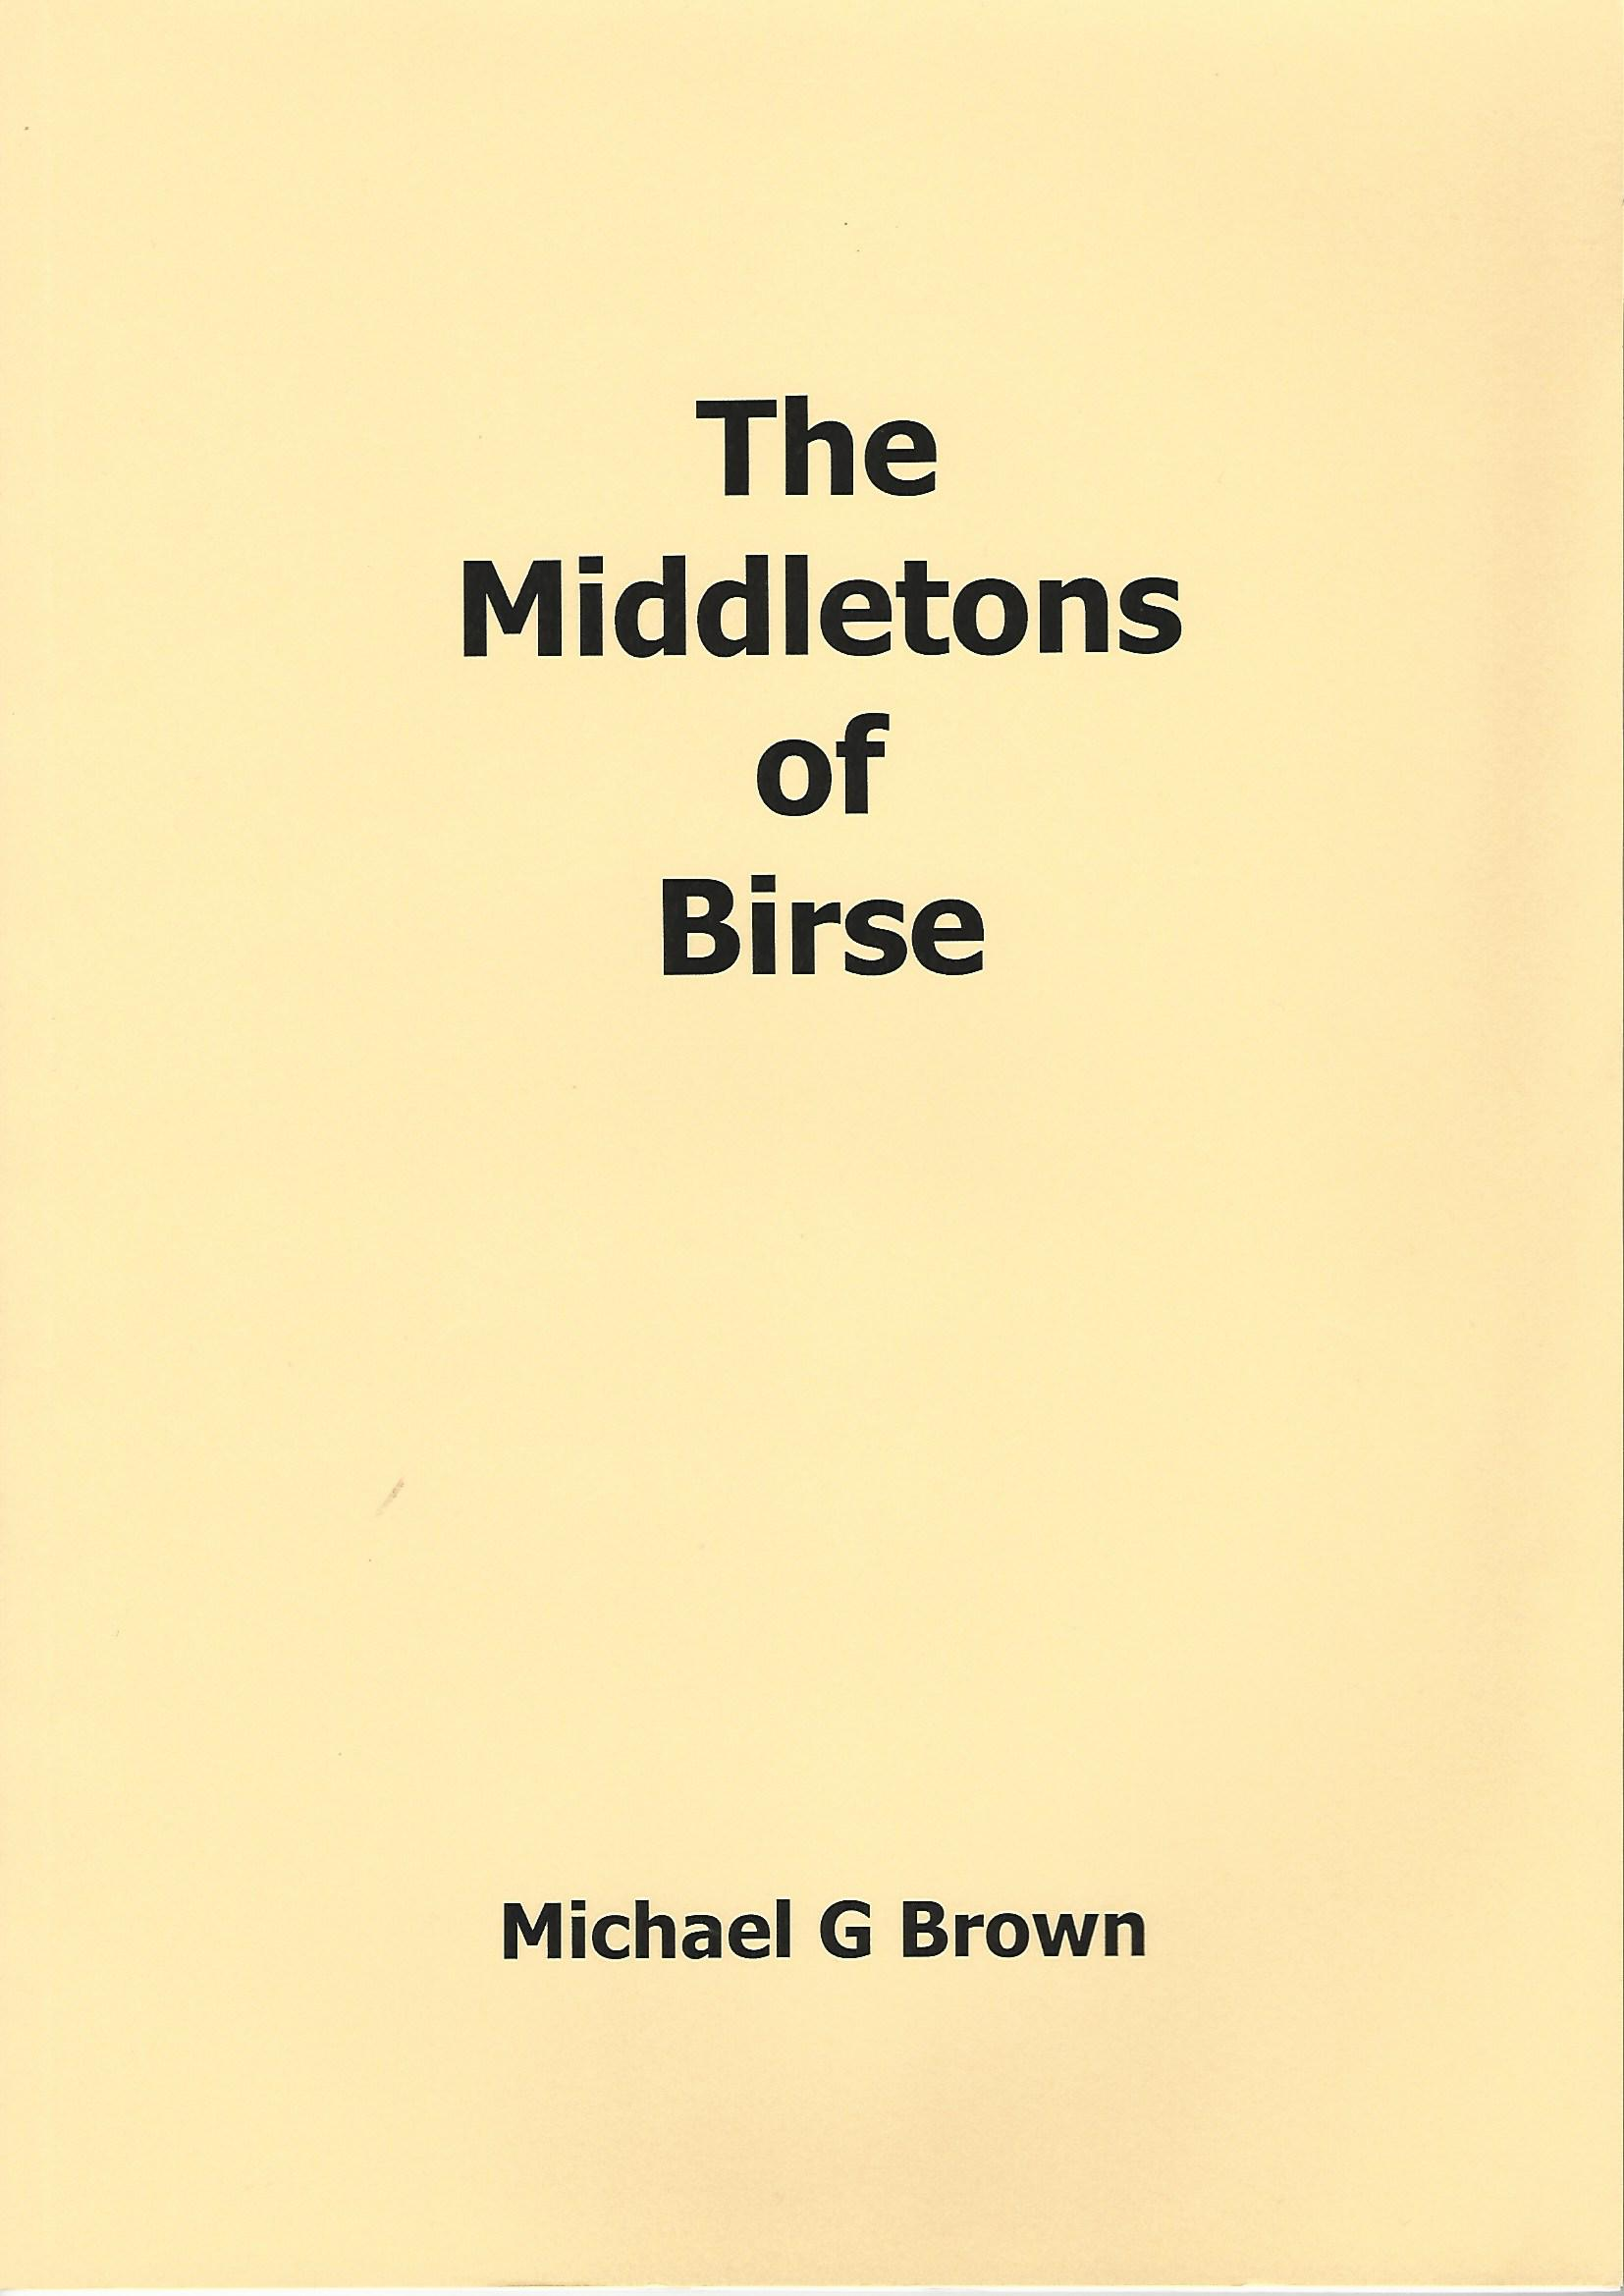 Image for The Middletons of Birse.